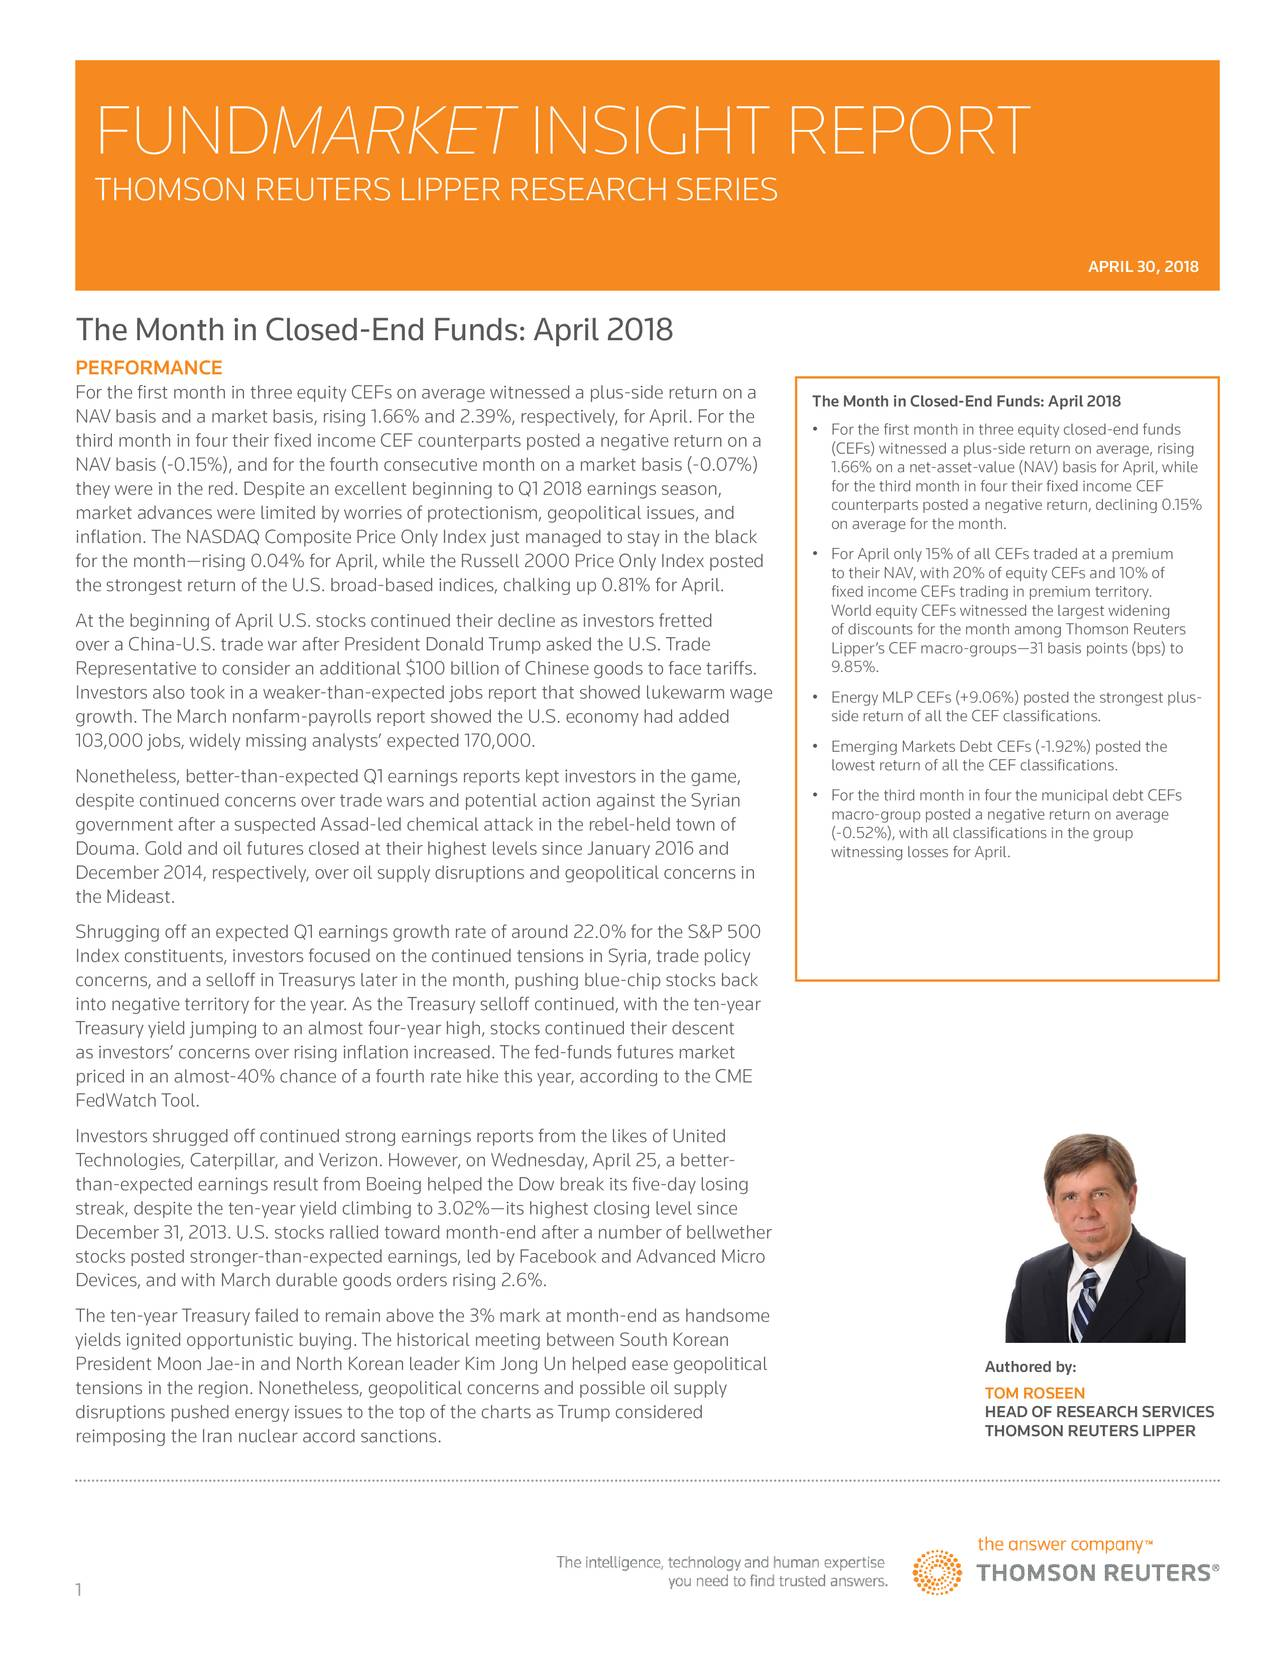 THOMSON REUTERS LIPPER RESEARCH SERIES APRIL 30, 2018 The Month in Closed-End Funds: April 2018 PERFORMANCE For the first month in three equity CEFs on average witnessed a plus-side return on a The Month in Closed-End Funds: April 2018 NAV basis and a market basis, rising 1.66% and 2.39%, respectively, for April. For the third month in four their fixed income CEF counterparts posted a negative return on a • For the first month in three equity closed-end funds NAV basis (-0.15%), and for the fourth consecutive month on a market basis (-0.07%) (CEFs) witnessed a plus-side return on average, rising 1.66% on a net-asset-value (NAV) basis for April, while they were in the red. Despite an excellent beginning to Q1 2018 earnings season, counterparts posted a negative return, declining 0.15% market advances were limited by worries of protectionism, geopolitical issues, and on average for the month. inflation. The NASDAQ Composite Price Only Index just managed to stay in the black for the month—rising 0.04% for April, while the Russell 2000 Price Only Index posted • For April only 15% of all CEFs traded at a premium to their NAV, with 20% of equity CEFs and 10% of the strongest return of the U.S. broad-based indices, chalking up 0.81% for April. fixed income CEFs trading in premium territory. World equity CEFs witnessed the largest widening At the beginning of April U.S. stocks continued their decline as investors fretted of discounts for the month among Thomson Reuters over a China-U.S. trade war after President Donald Trump asked the U.S. Trade Lipper's CEF macro-groups—31 basis points (bps) to Representative to consider an additional $100 billion of Chinese goods to face tariffs. 9.85%. Investors also took in a weaker-than-expected jobs report that showed lukewarm wage • Energy MLP CEFs (+9.06%) posted the strongest plus- side return of all the CEF classifications. growth. The March nonfarm-payrolls report showed the U.S. economy had added 103,000 jobs, widely missing ana